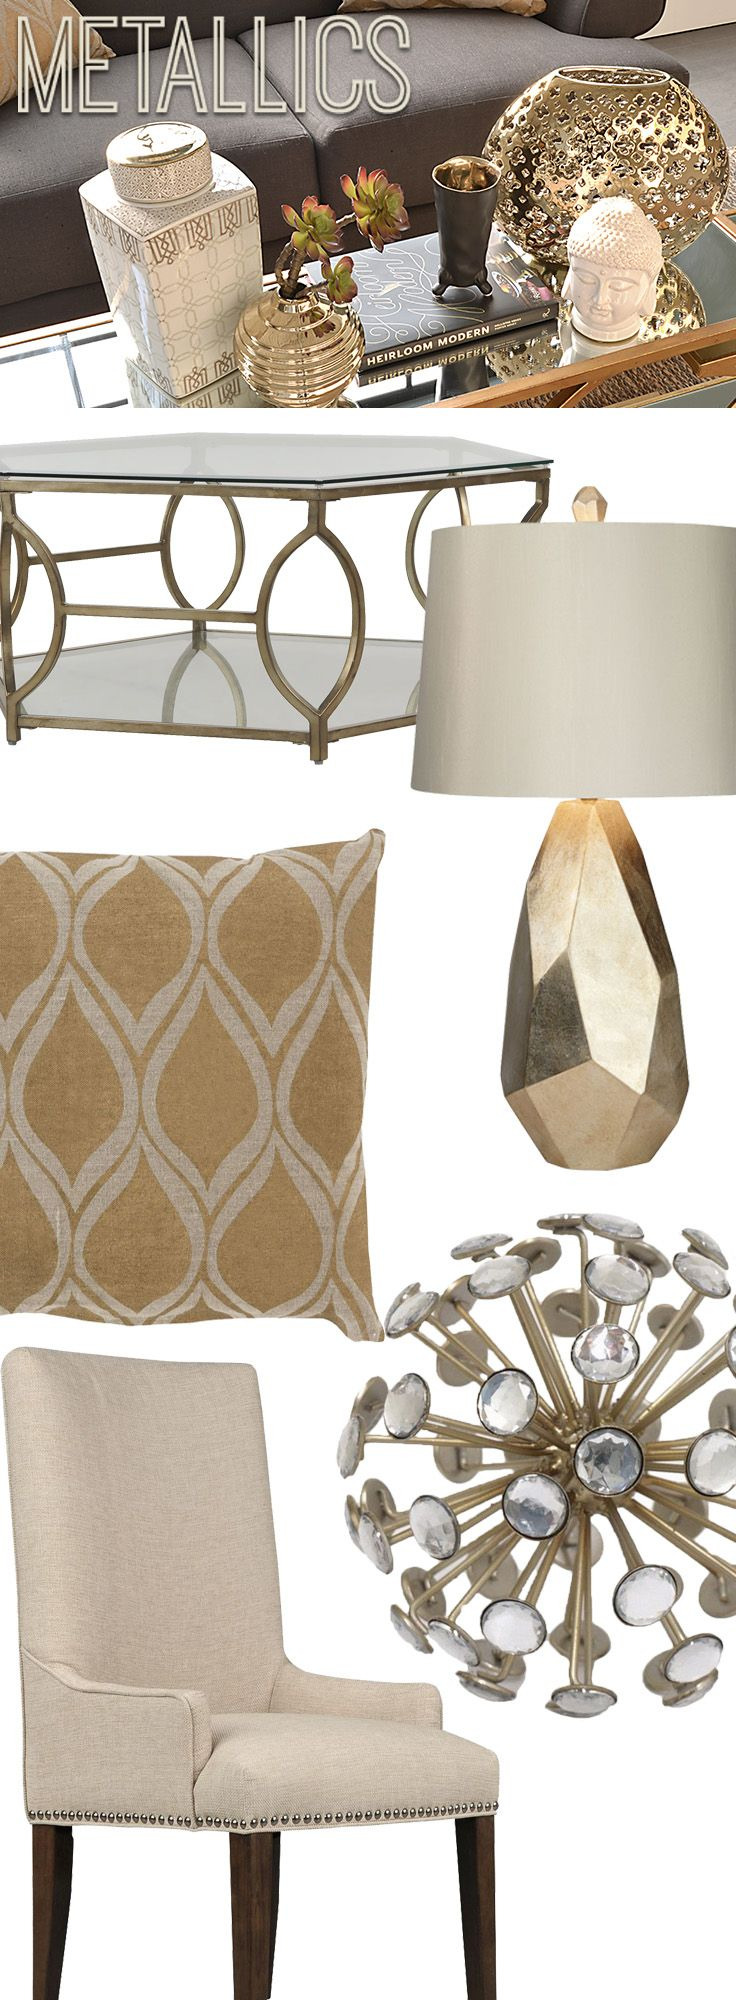 Add some metallic accents to your home for a little sparkle and shine. Shop online now. #LivingSpaces